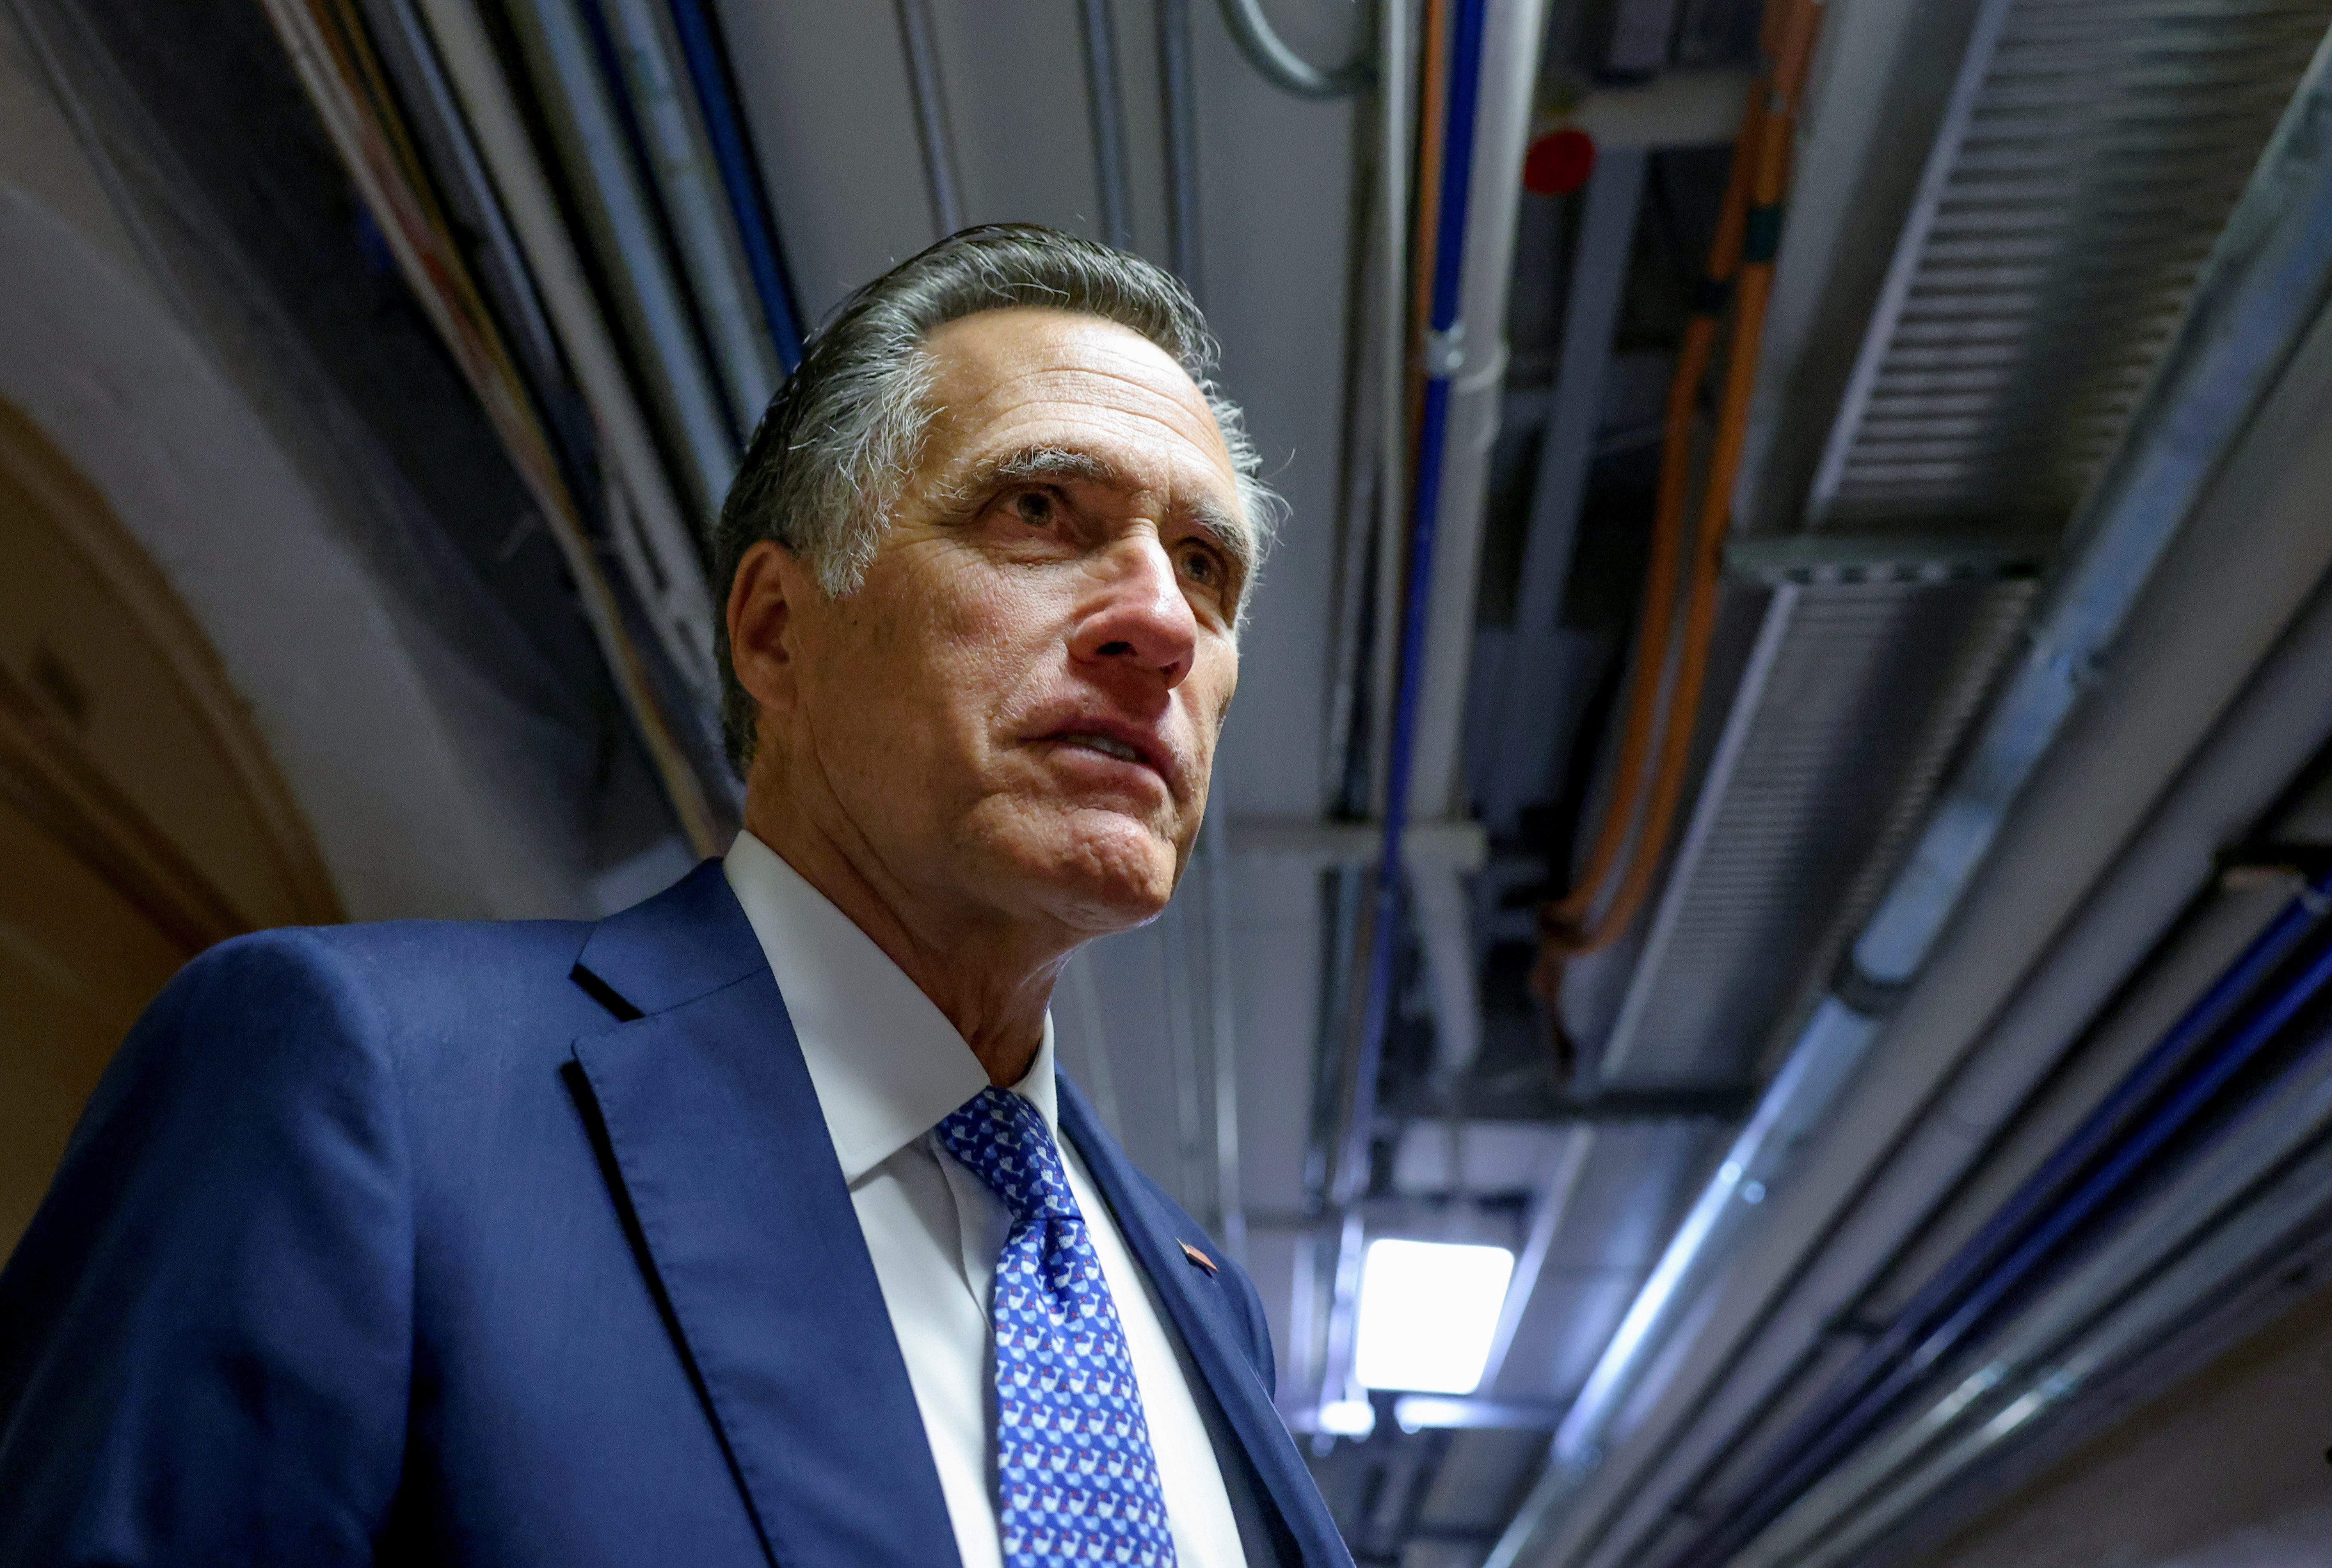 U.S. Senator Mitt Romney (R-UT) looks on as he departs after attending a bipartisan work group meeting on an infrastructure bill at the U.S. Capitol in Washington, U.S., June 8, 2021. REUTERS/Evelyn Hockstein